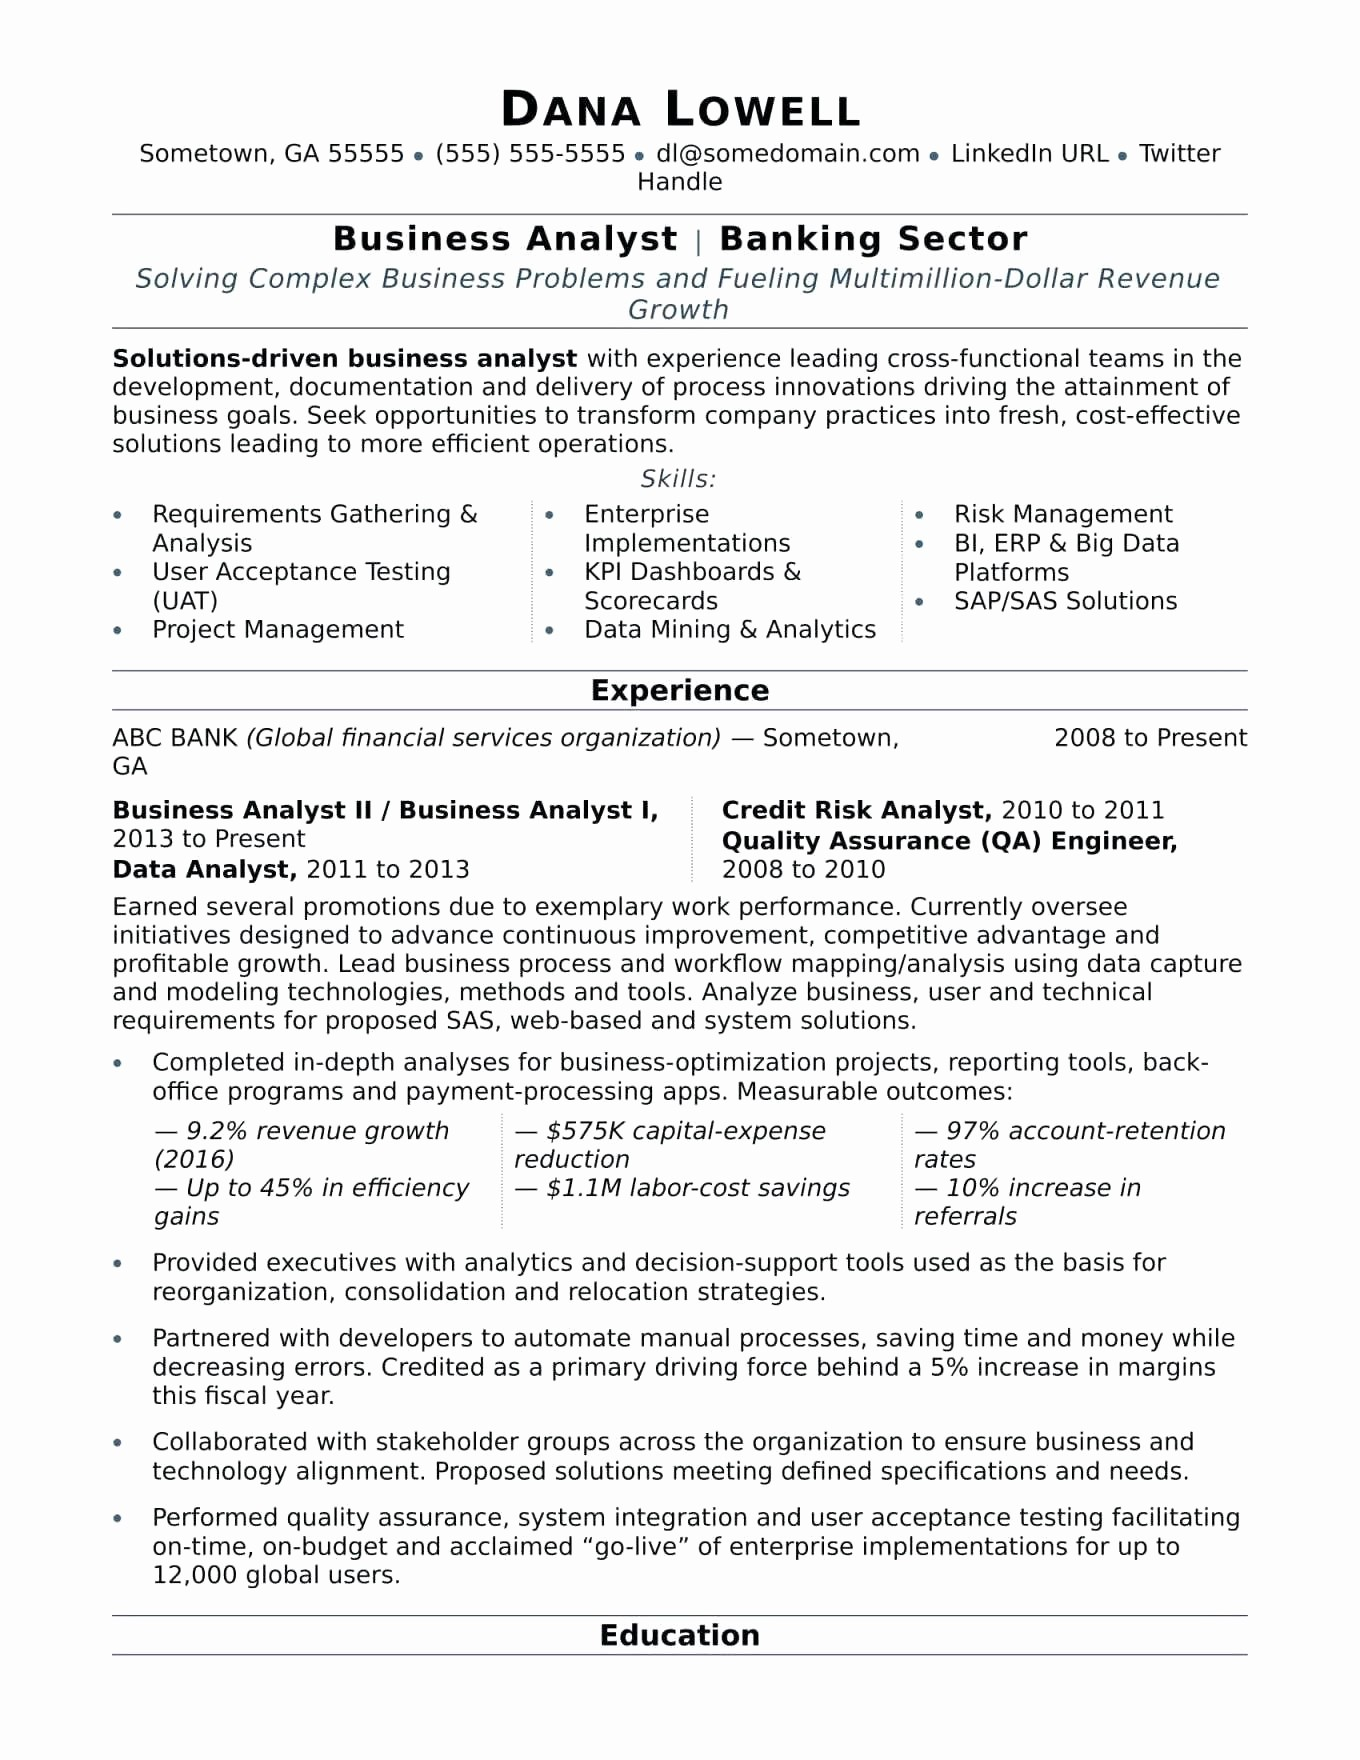 Certificate Of Analysis Template Excel Fresh Certificate Of Analysis Template – Offthetrail